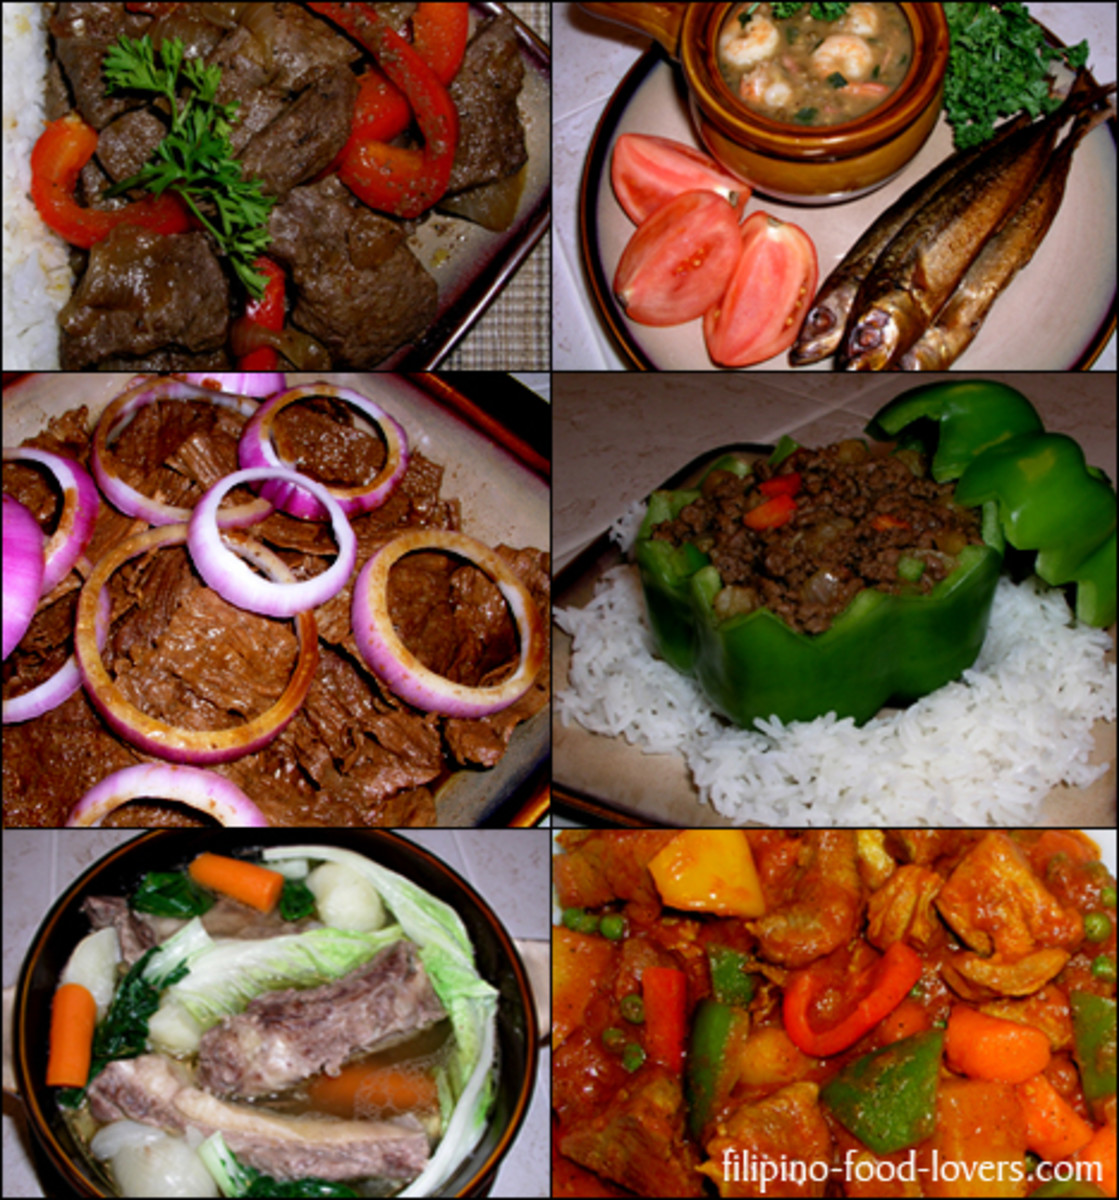 assorted menus for lunch or dinner -- filipinofoodlovers.com